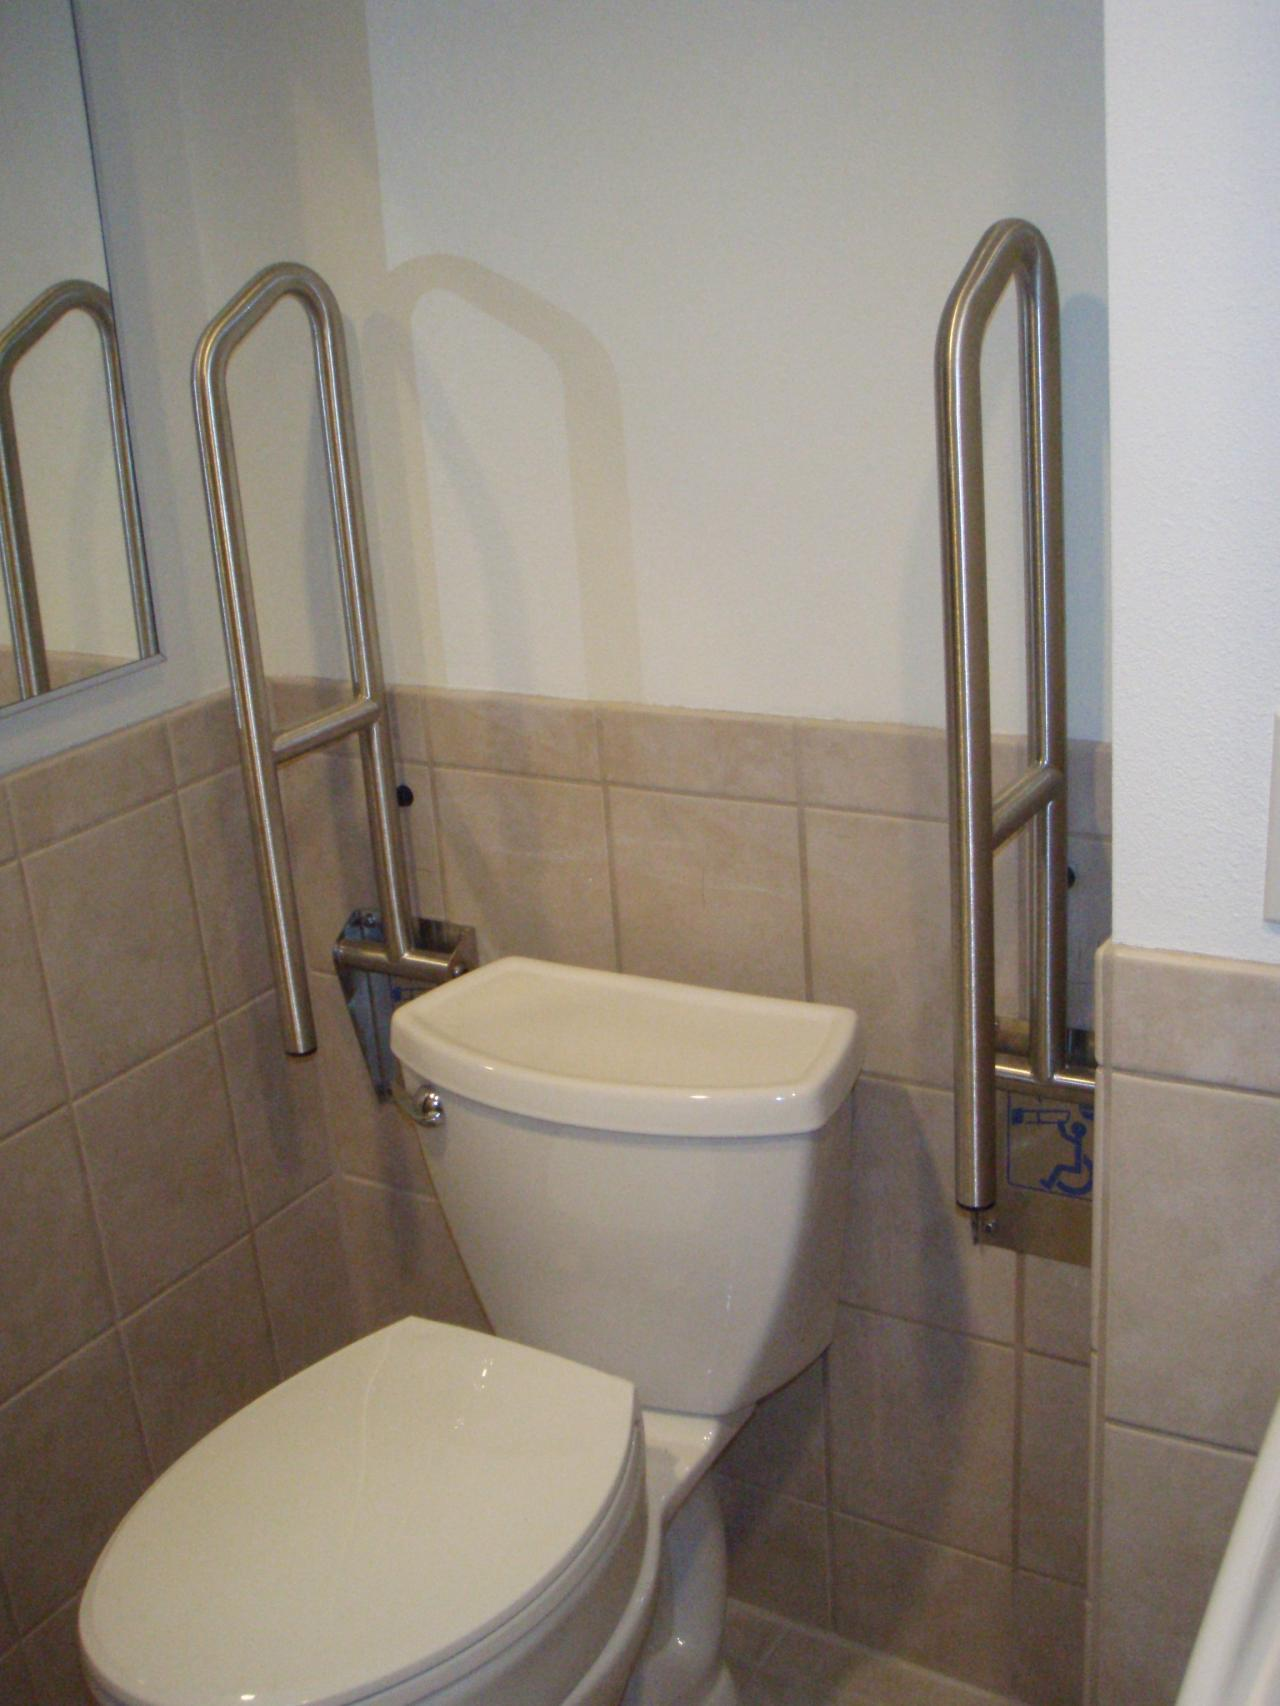 PRODAN CONSTRUCTION HANDICAPPED BATHROOM Ms Hayashi